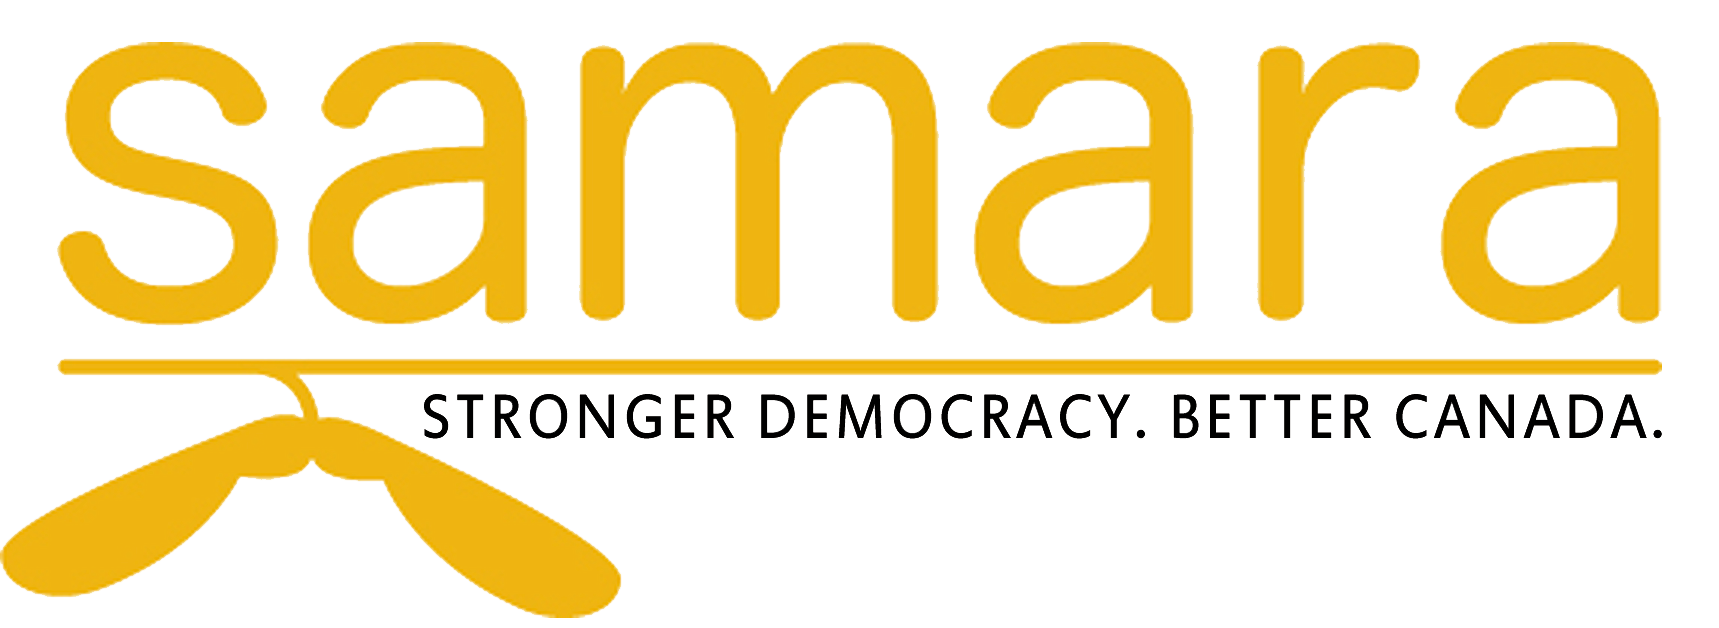 Samara_Stronger_Democracy_Better_Canada_cropped_for_NL.png